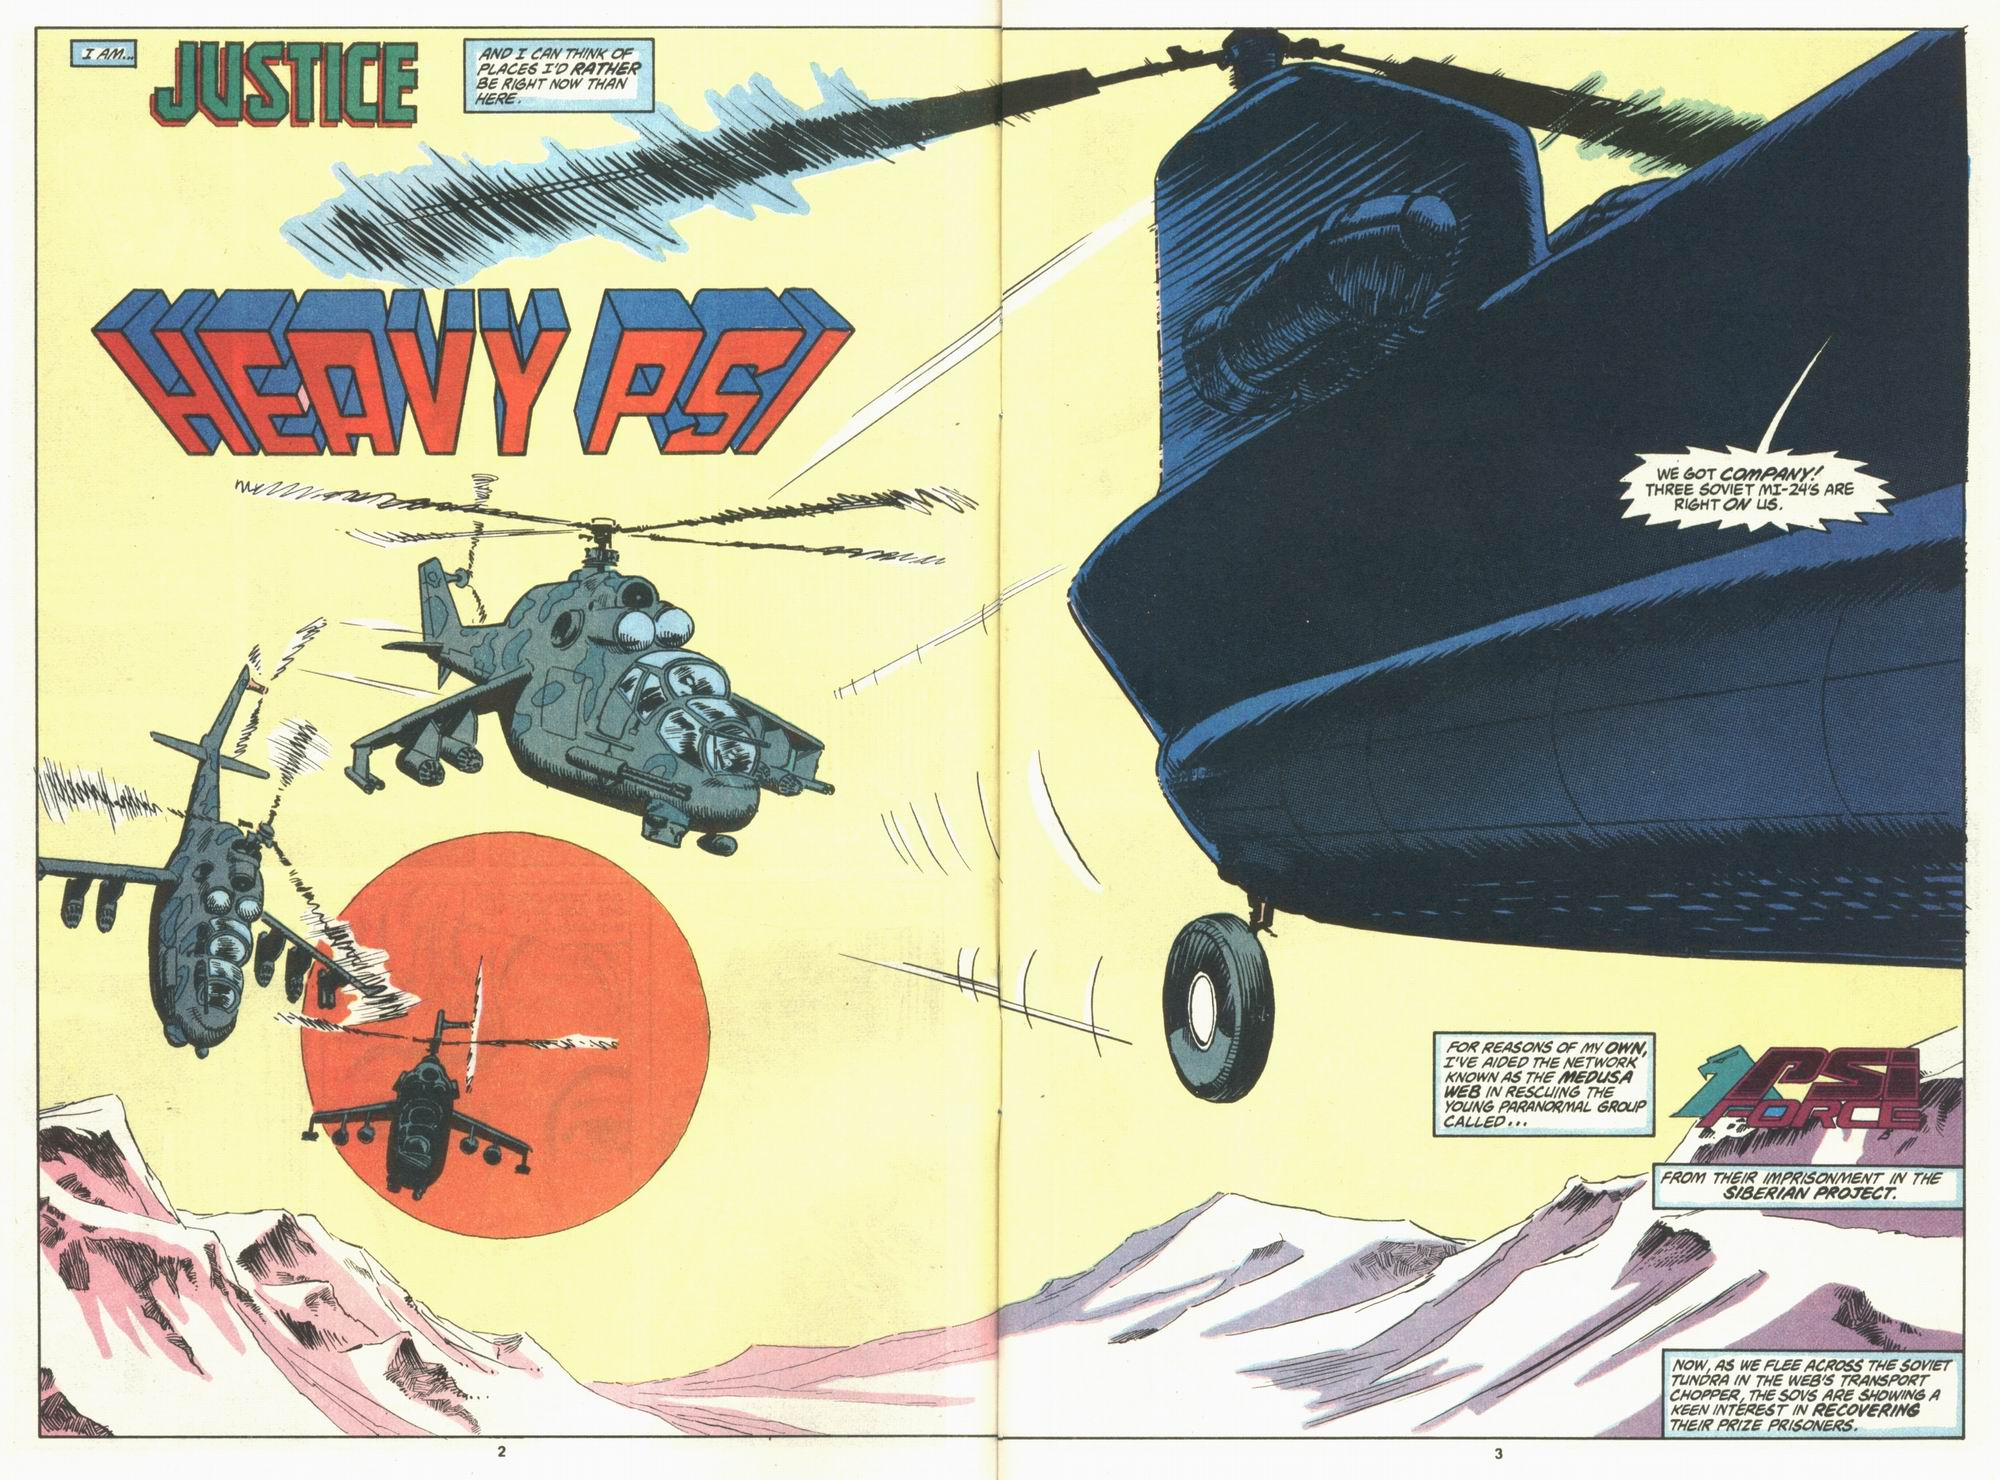 Read online Justice (1986) comic -  Issue #29 - 4